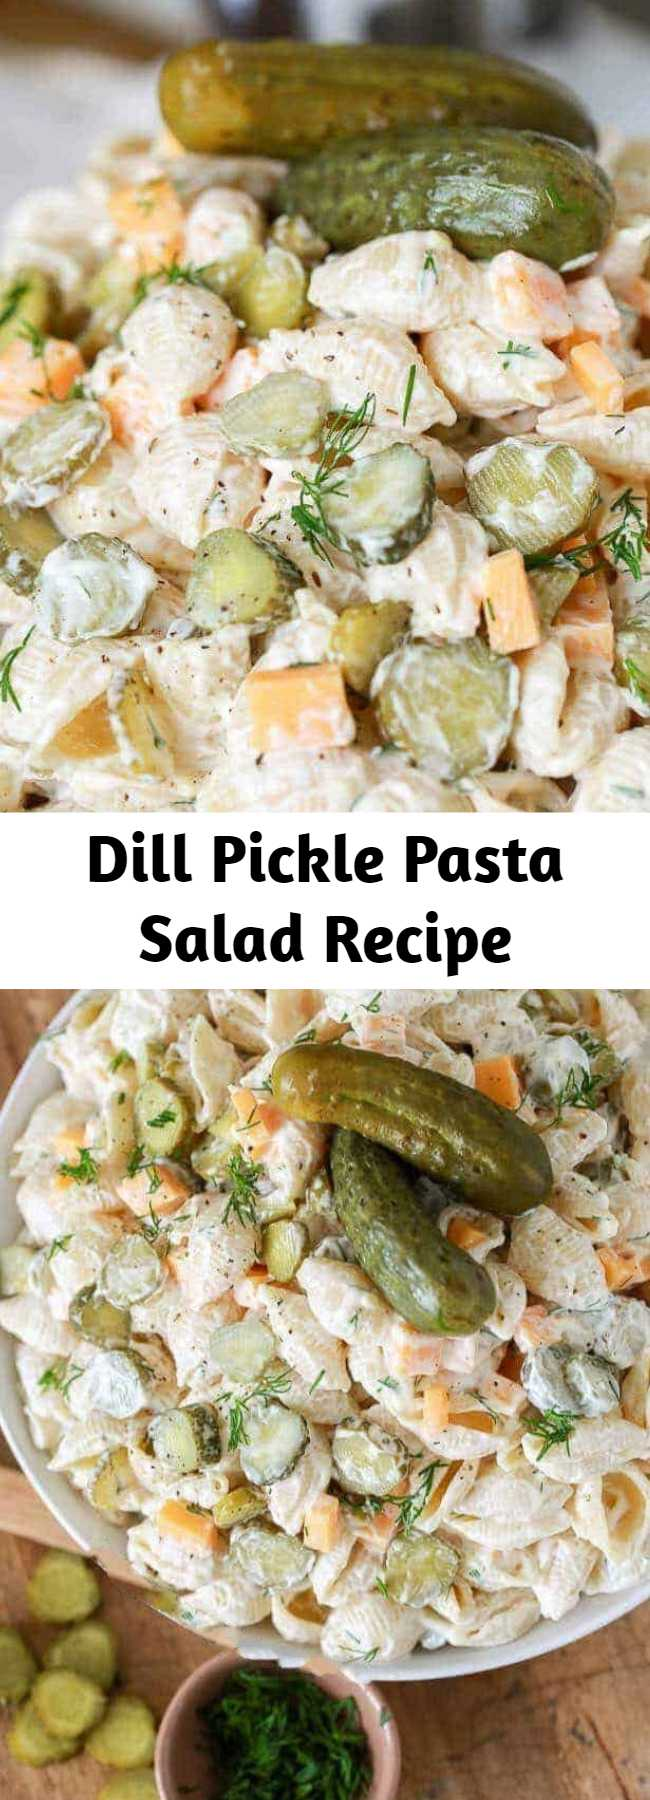 Dill Pickle Pasta Salad Recipe - This is literally my favorite pasta salad ever! In this creamy pasta salad recipe, dill pickles play a starring role and add tons of flavor and crunch! This recipe is even better when it's made ahead of time making it the perfect potluck dish!